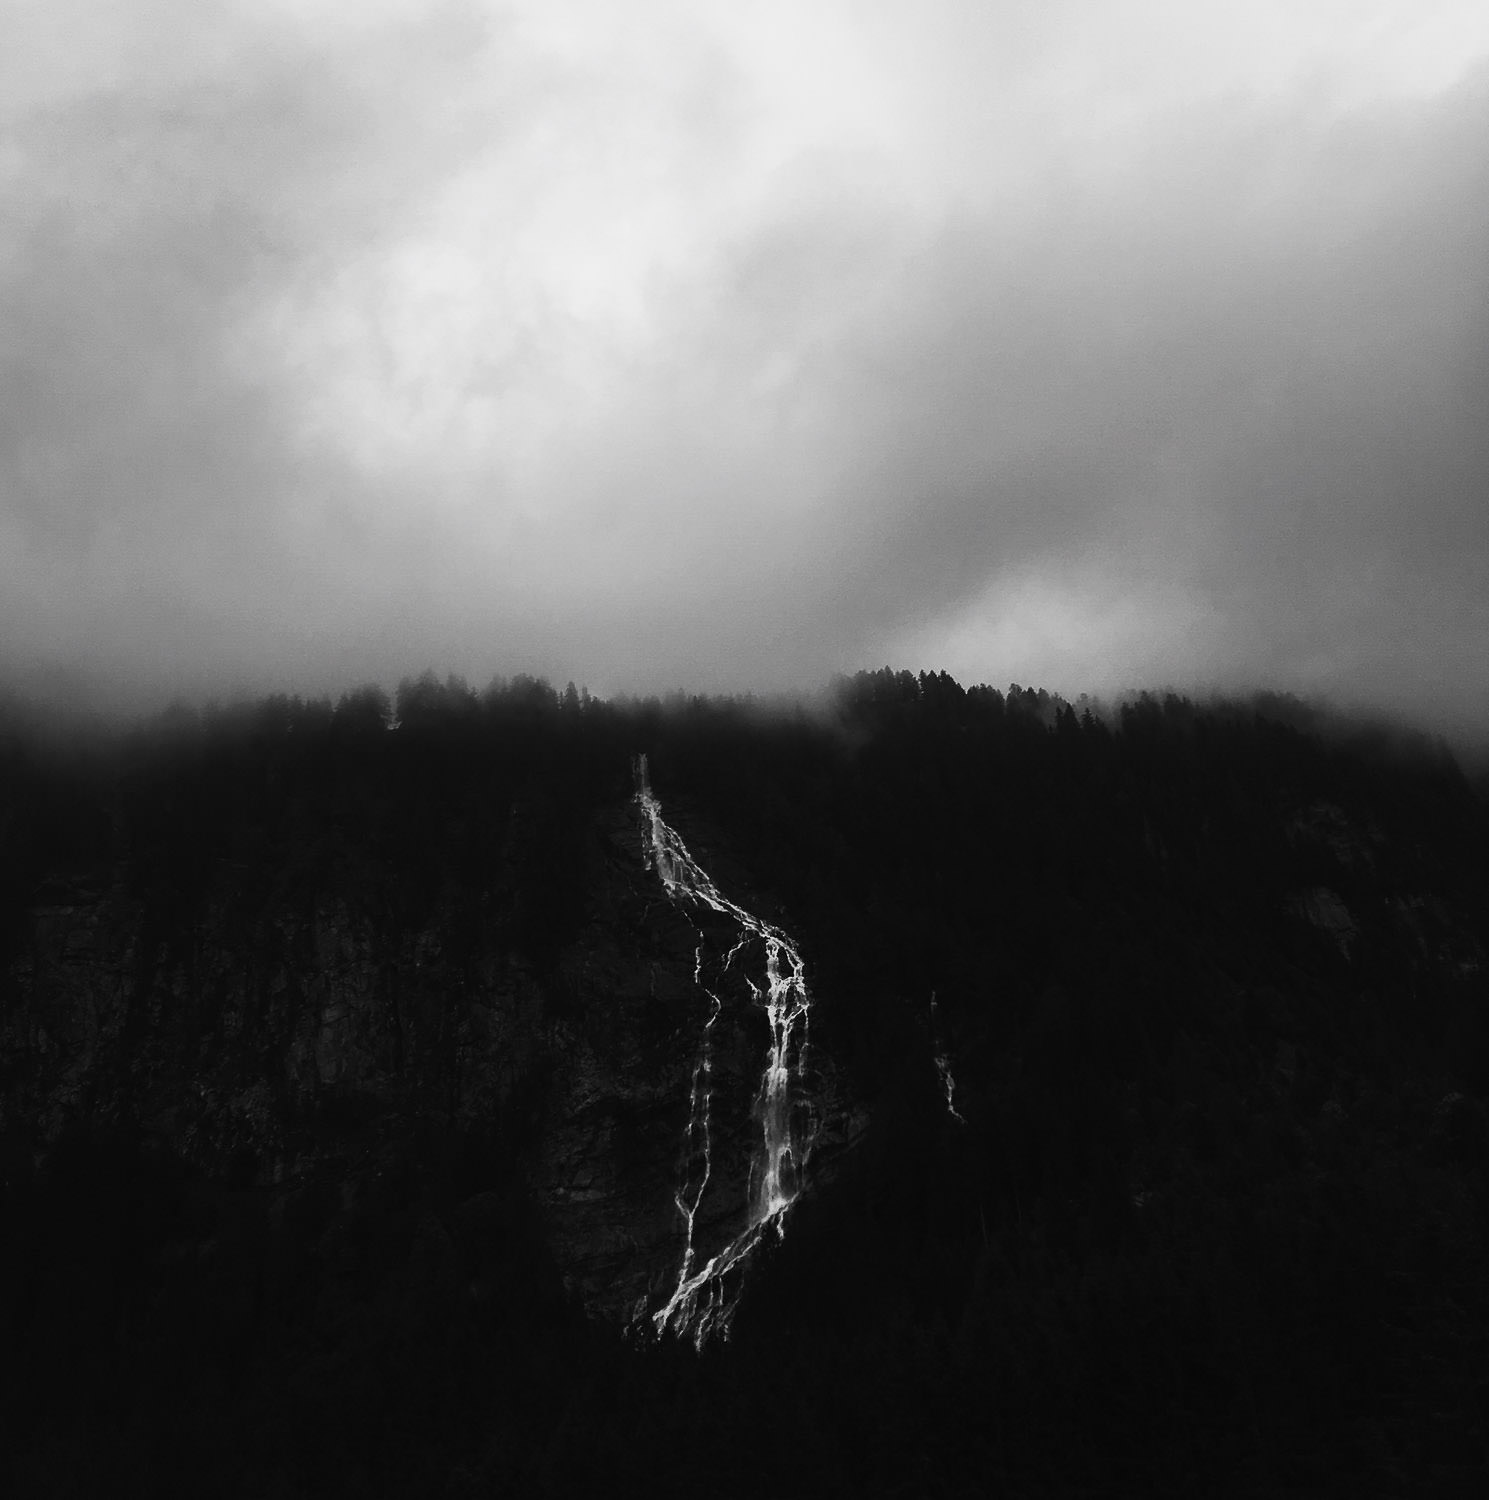 a waterfall captured en route to one of my recent weddings in Switzerland.